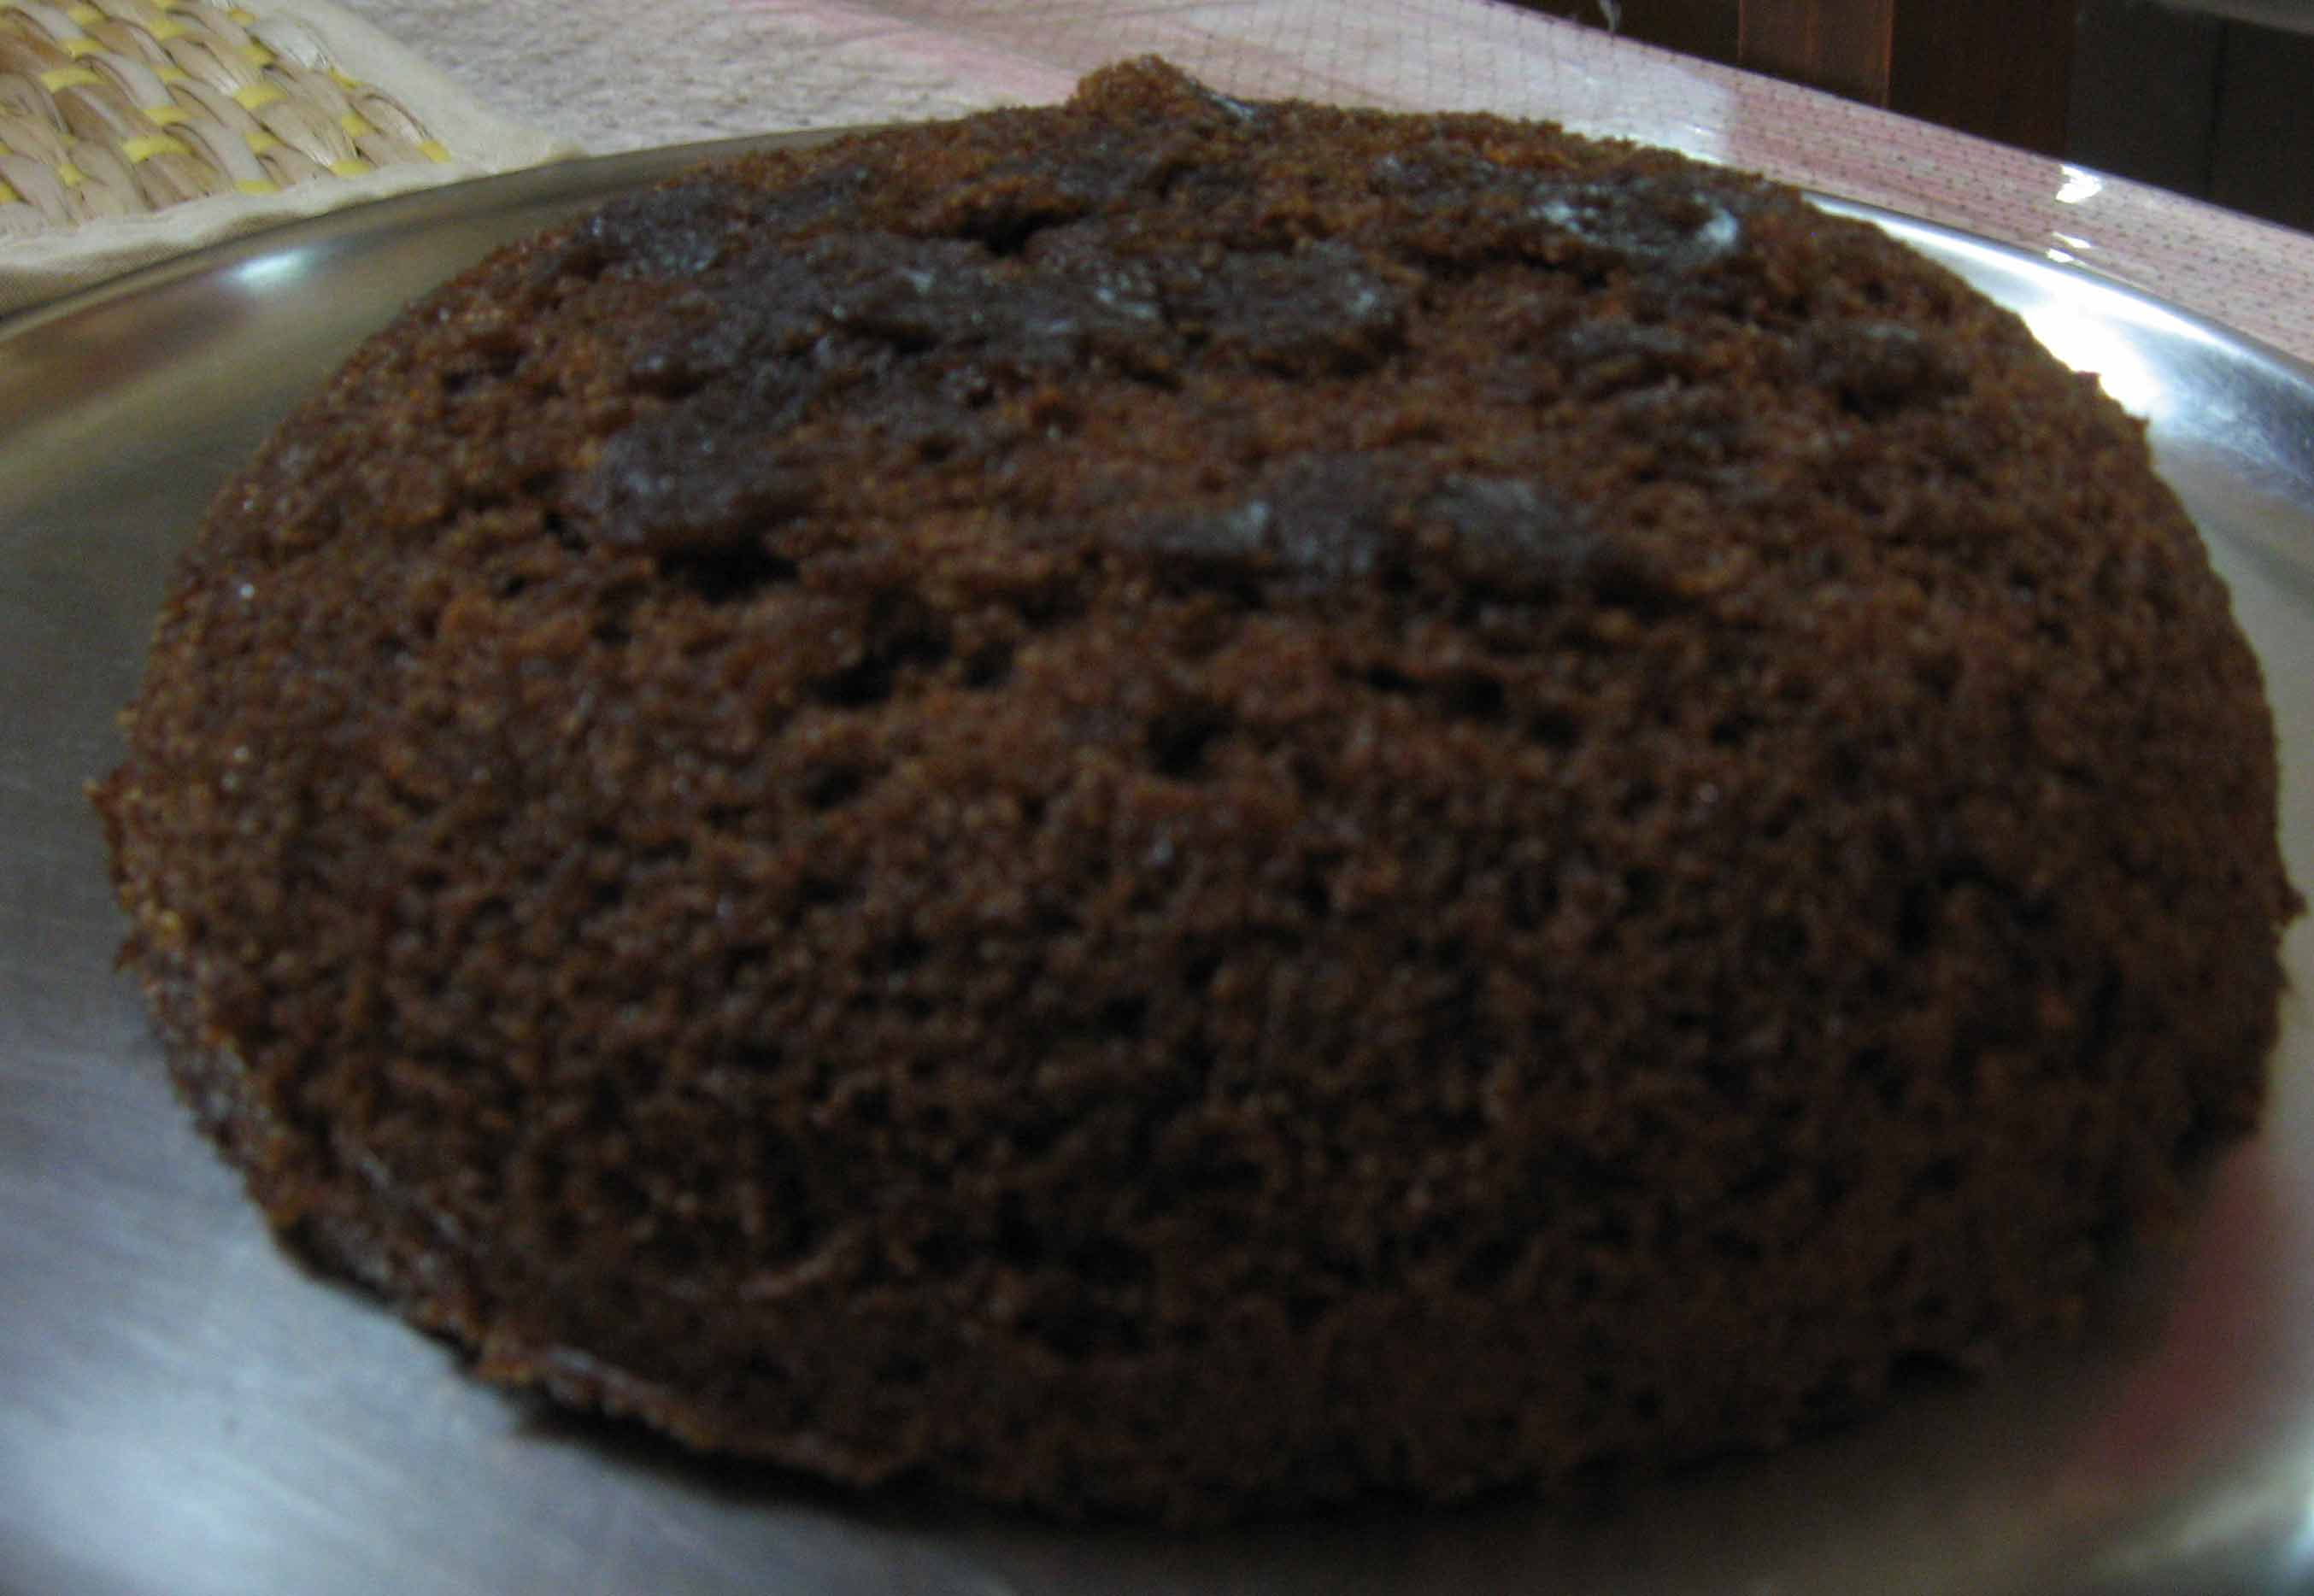 Japanese Microwave Cake Recipe: Microwave Chocolate Cake Recipe By Vandana